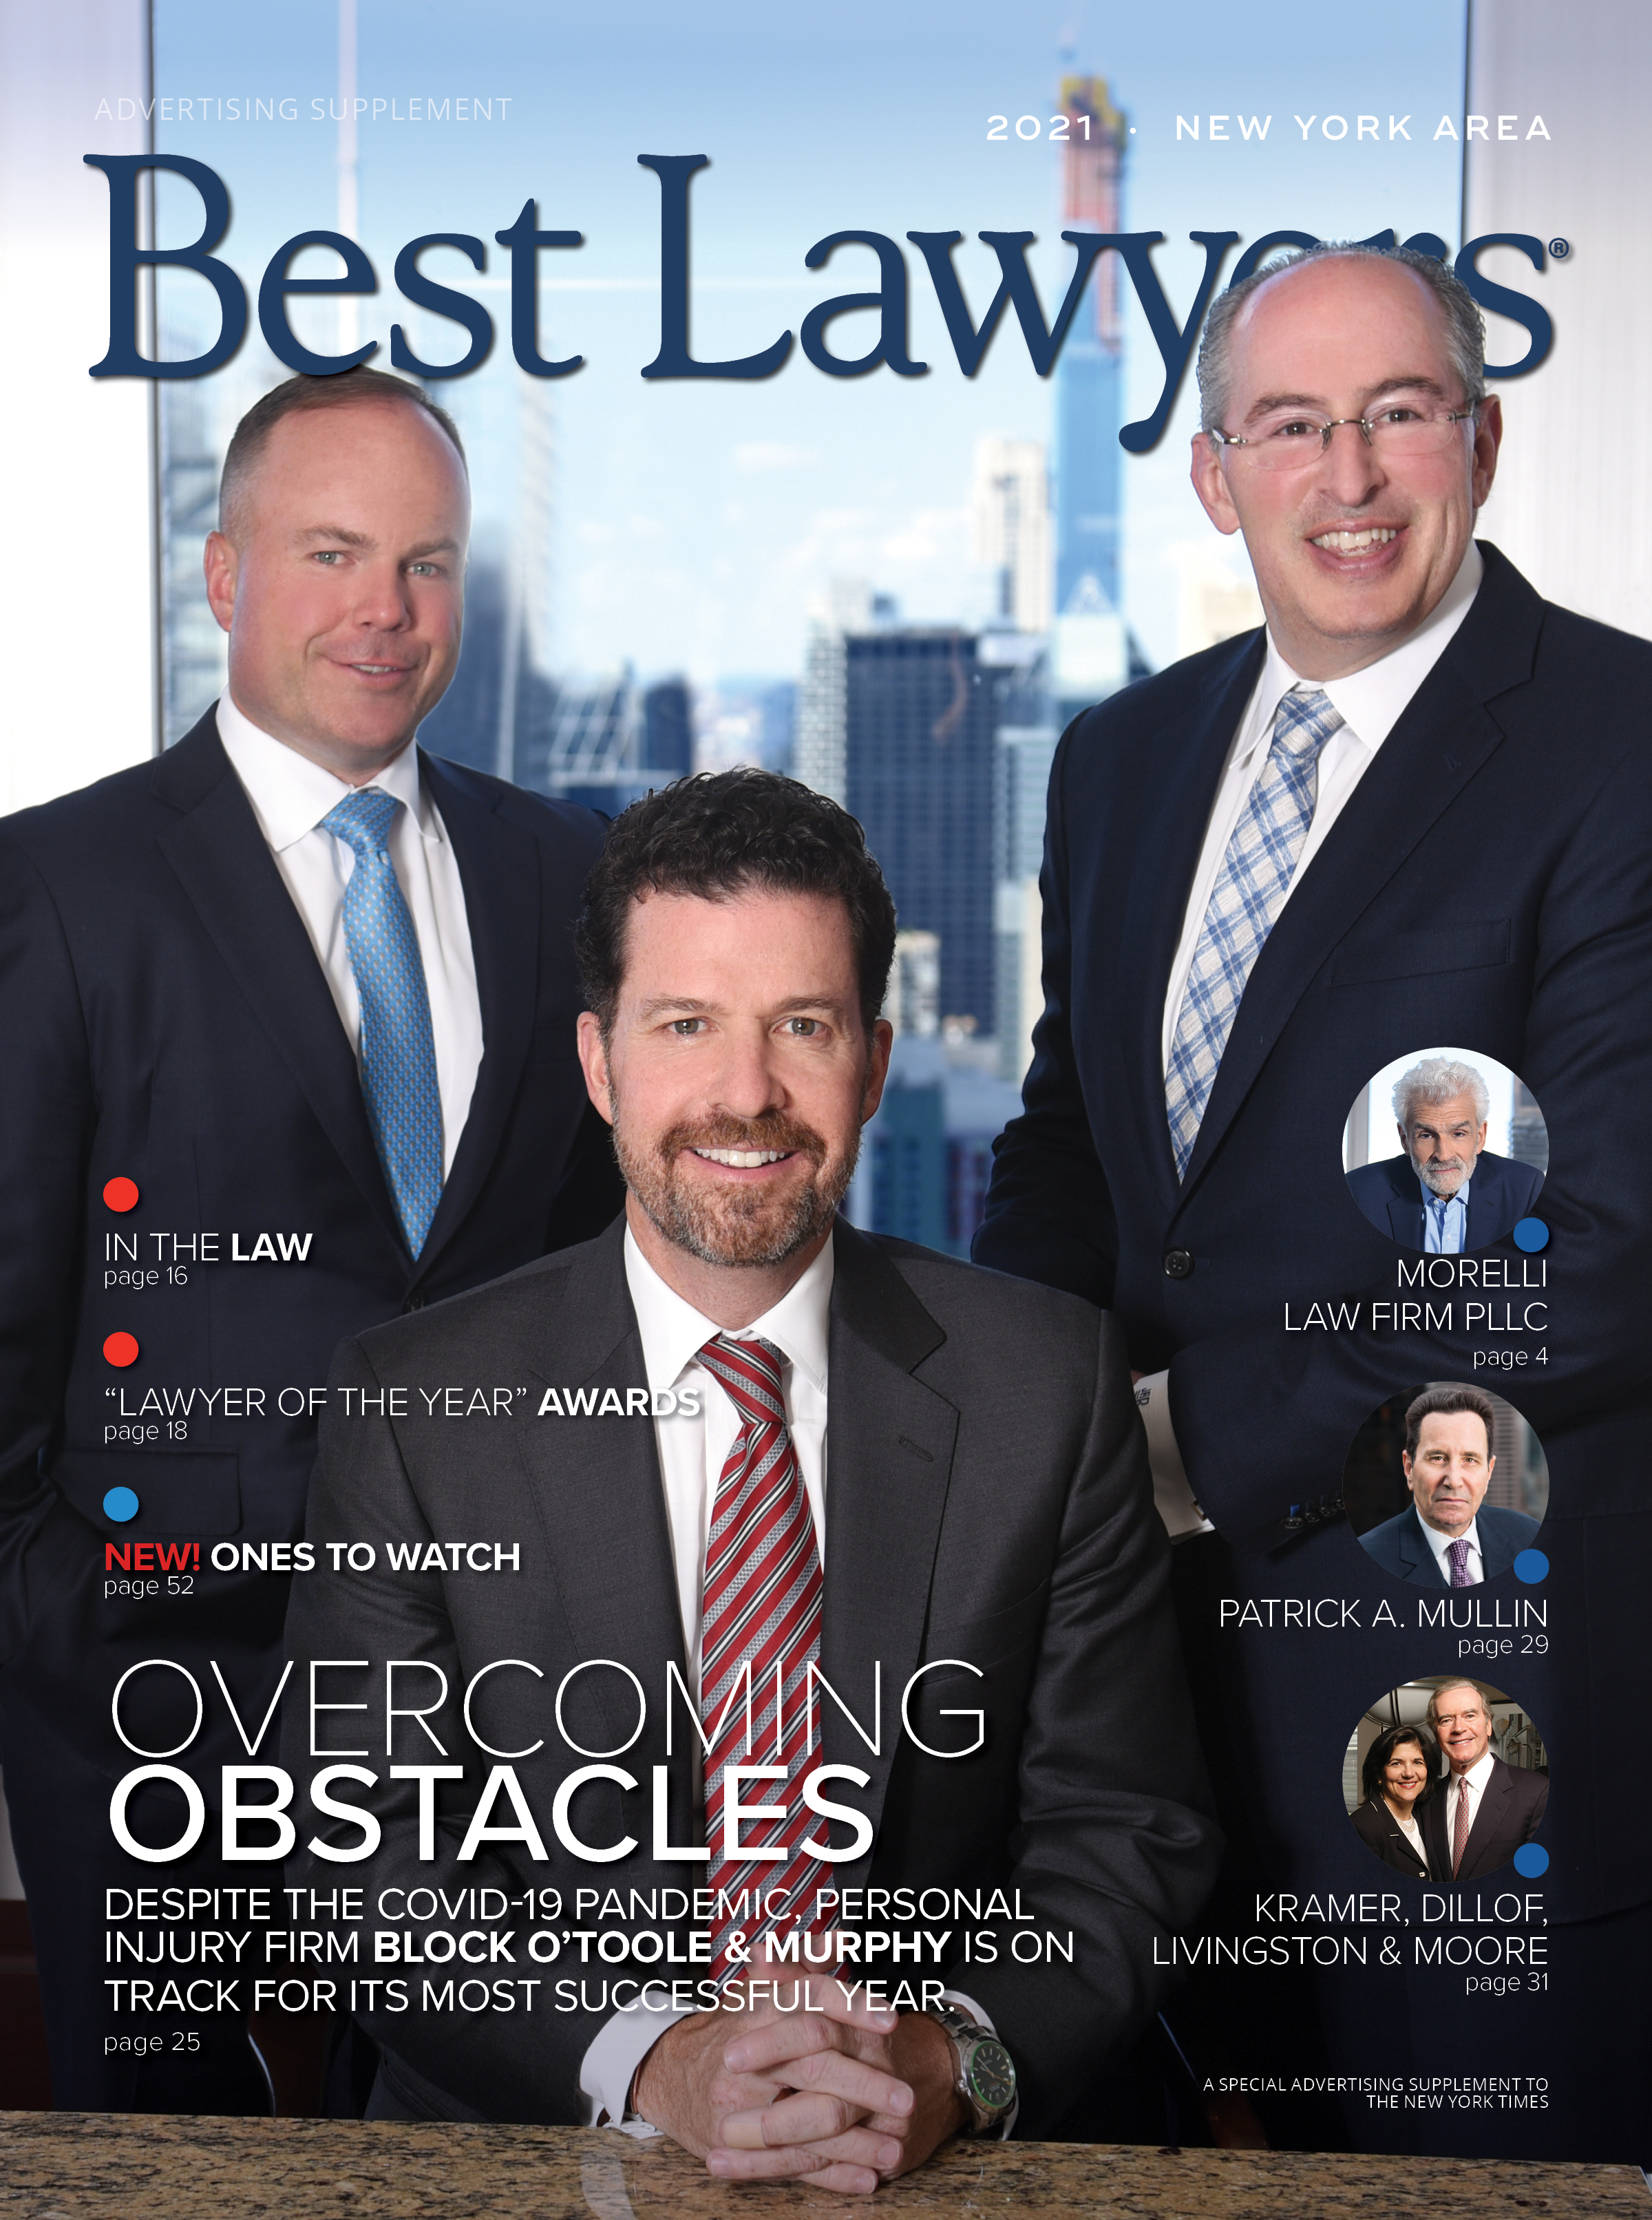 2021 New York Area's Best Lawyers cover